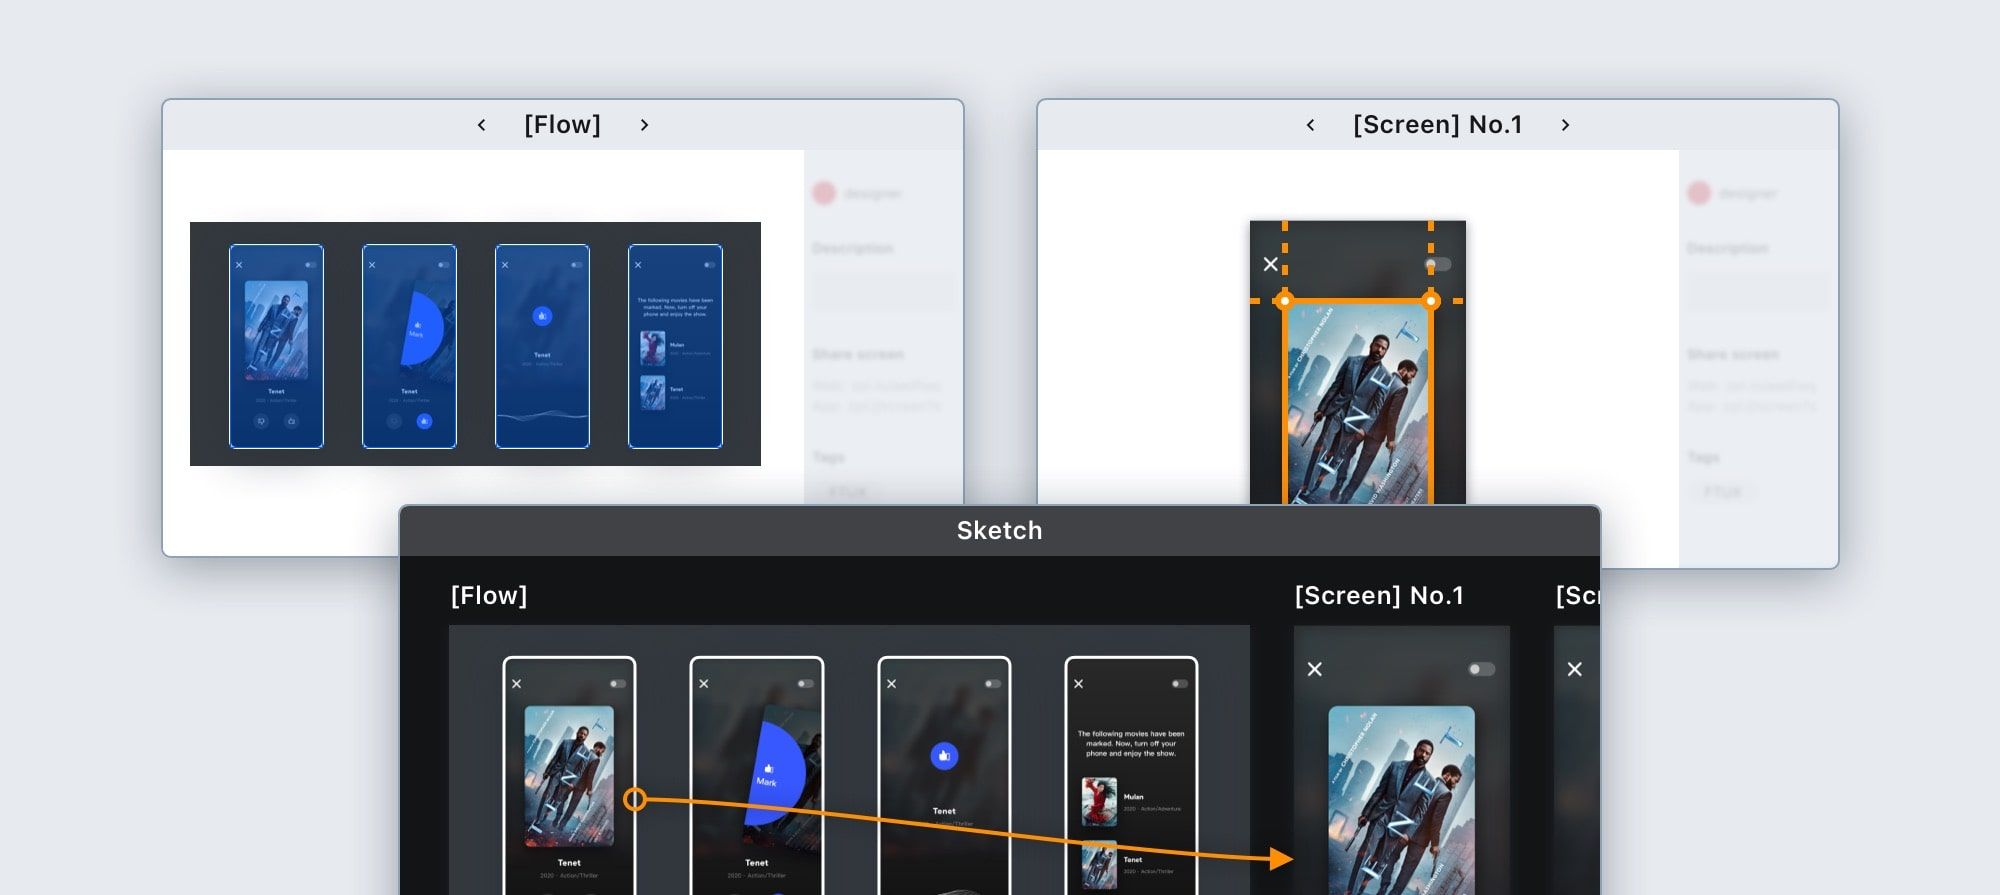 Utilize Sketch's prototype links to generate connection between collages and single board with spec features.